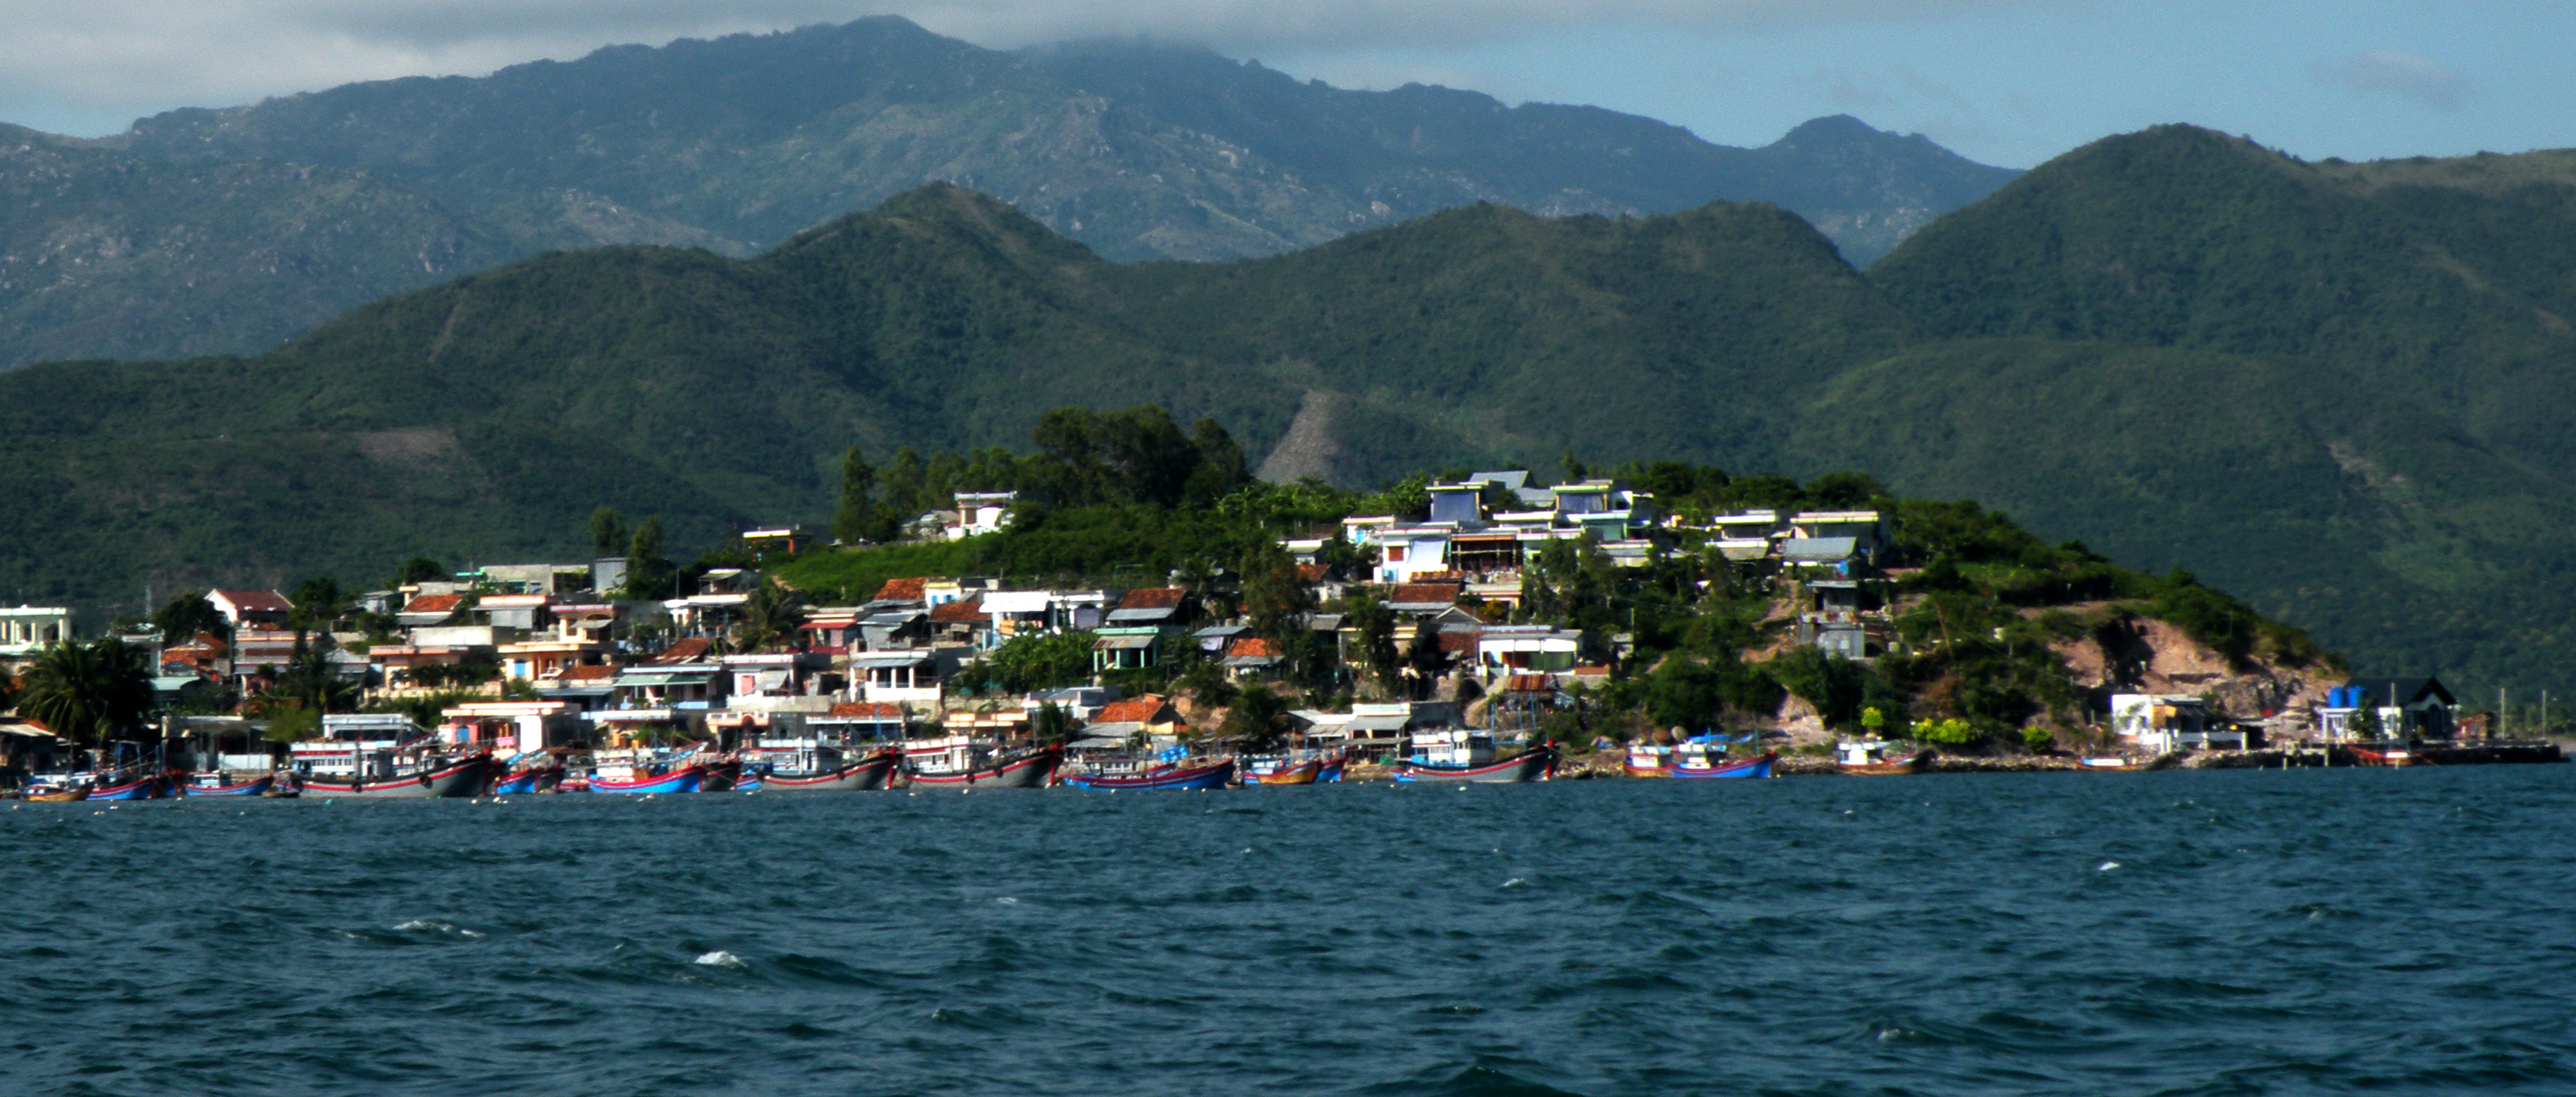 Nha Trang from the sea